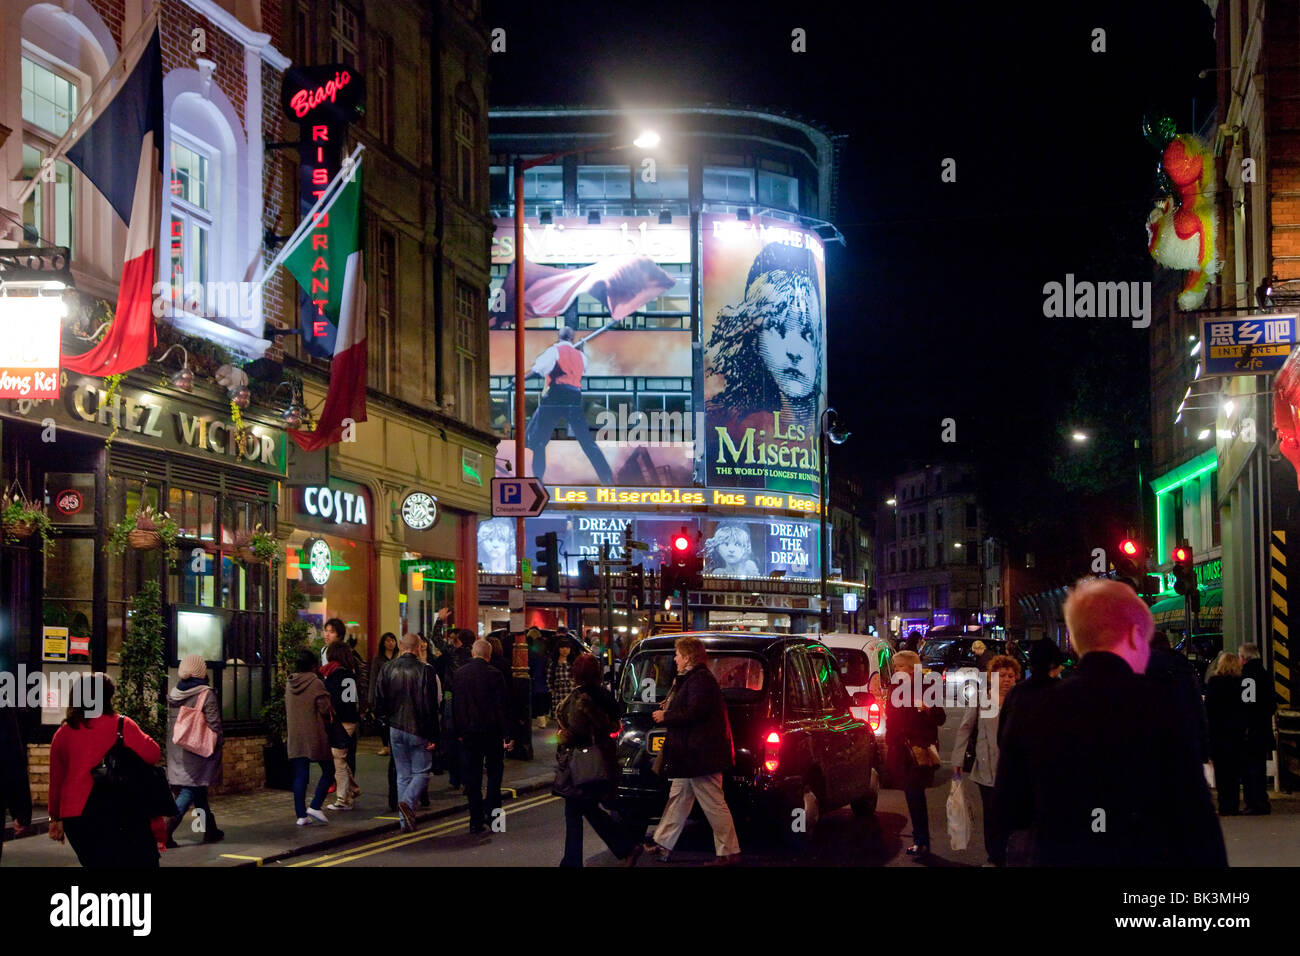 London West End at night, UK - Stock Image